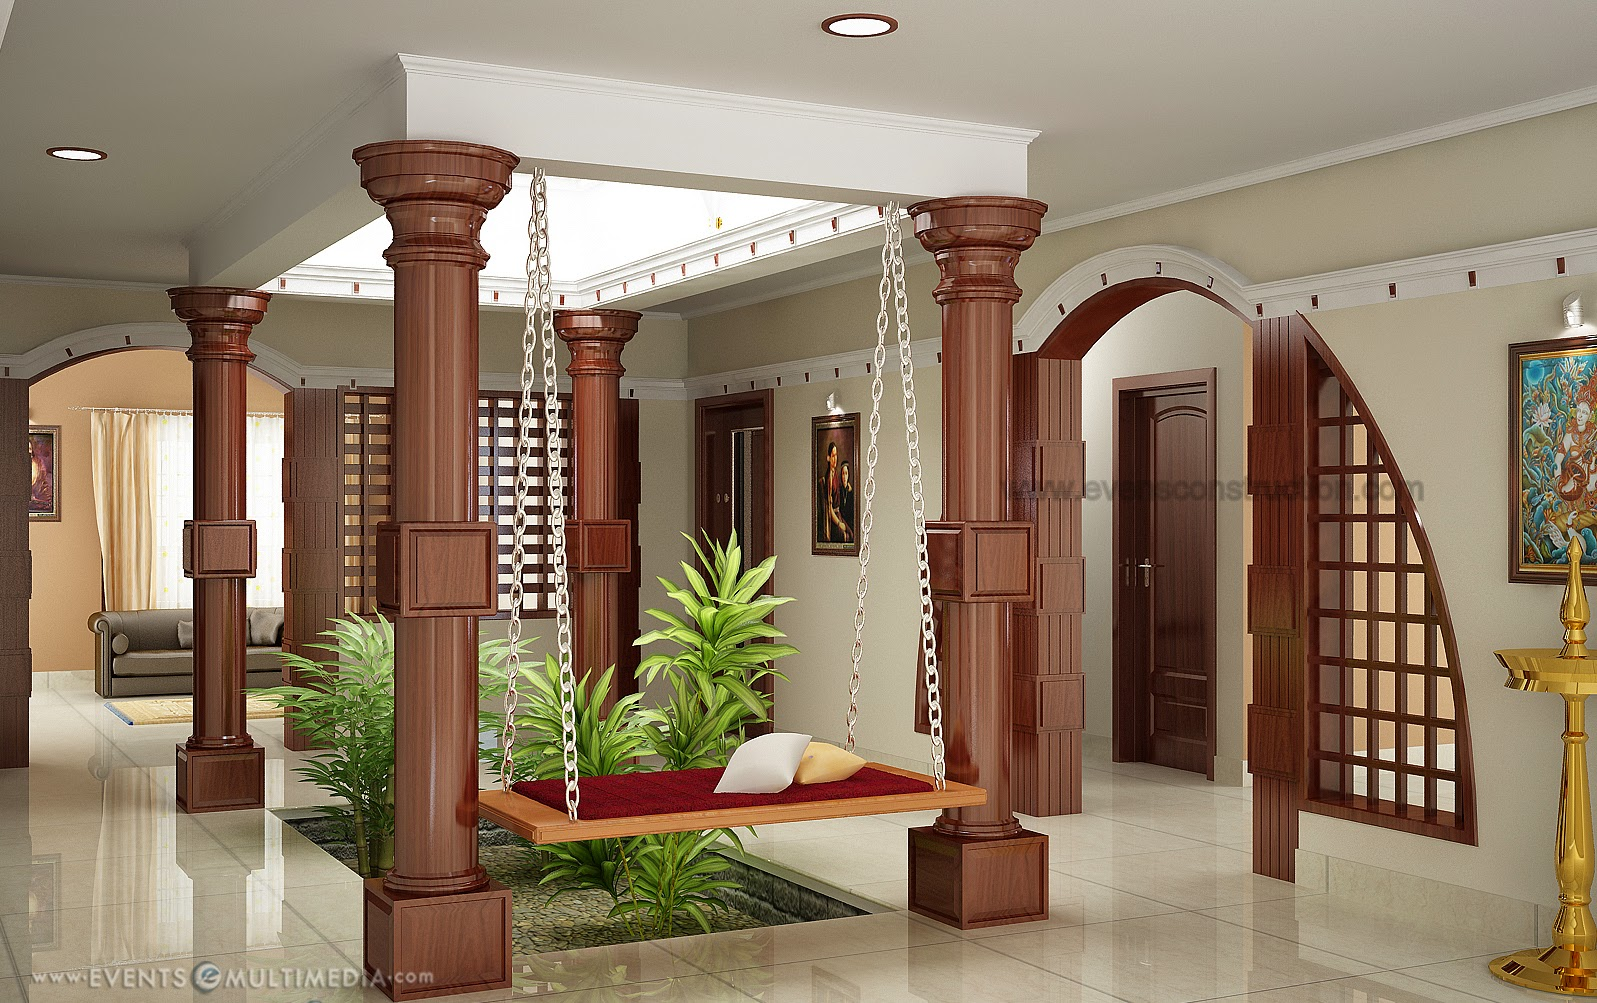 Kerala style home plans with interior courtyard Old world house plans courtyard